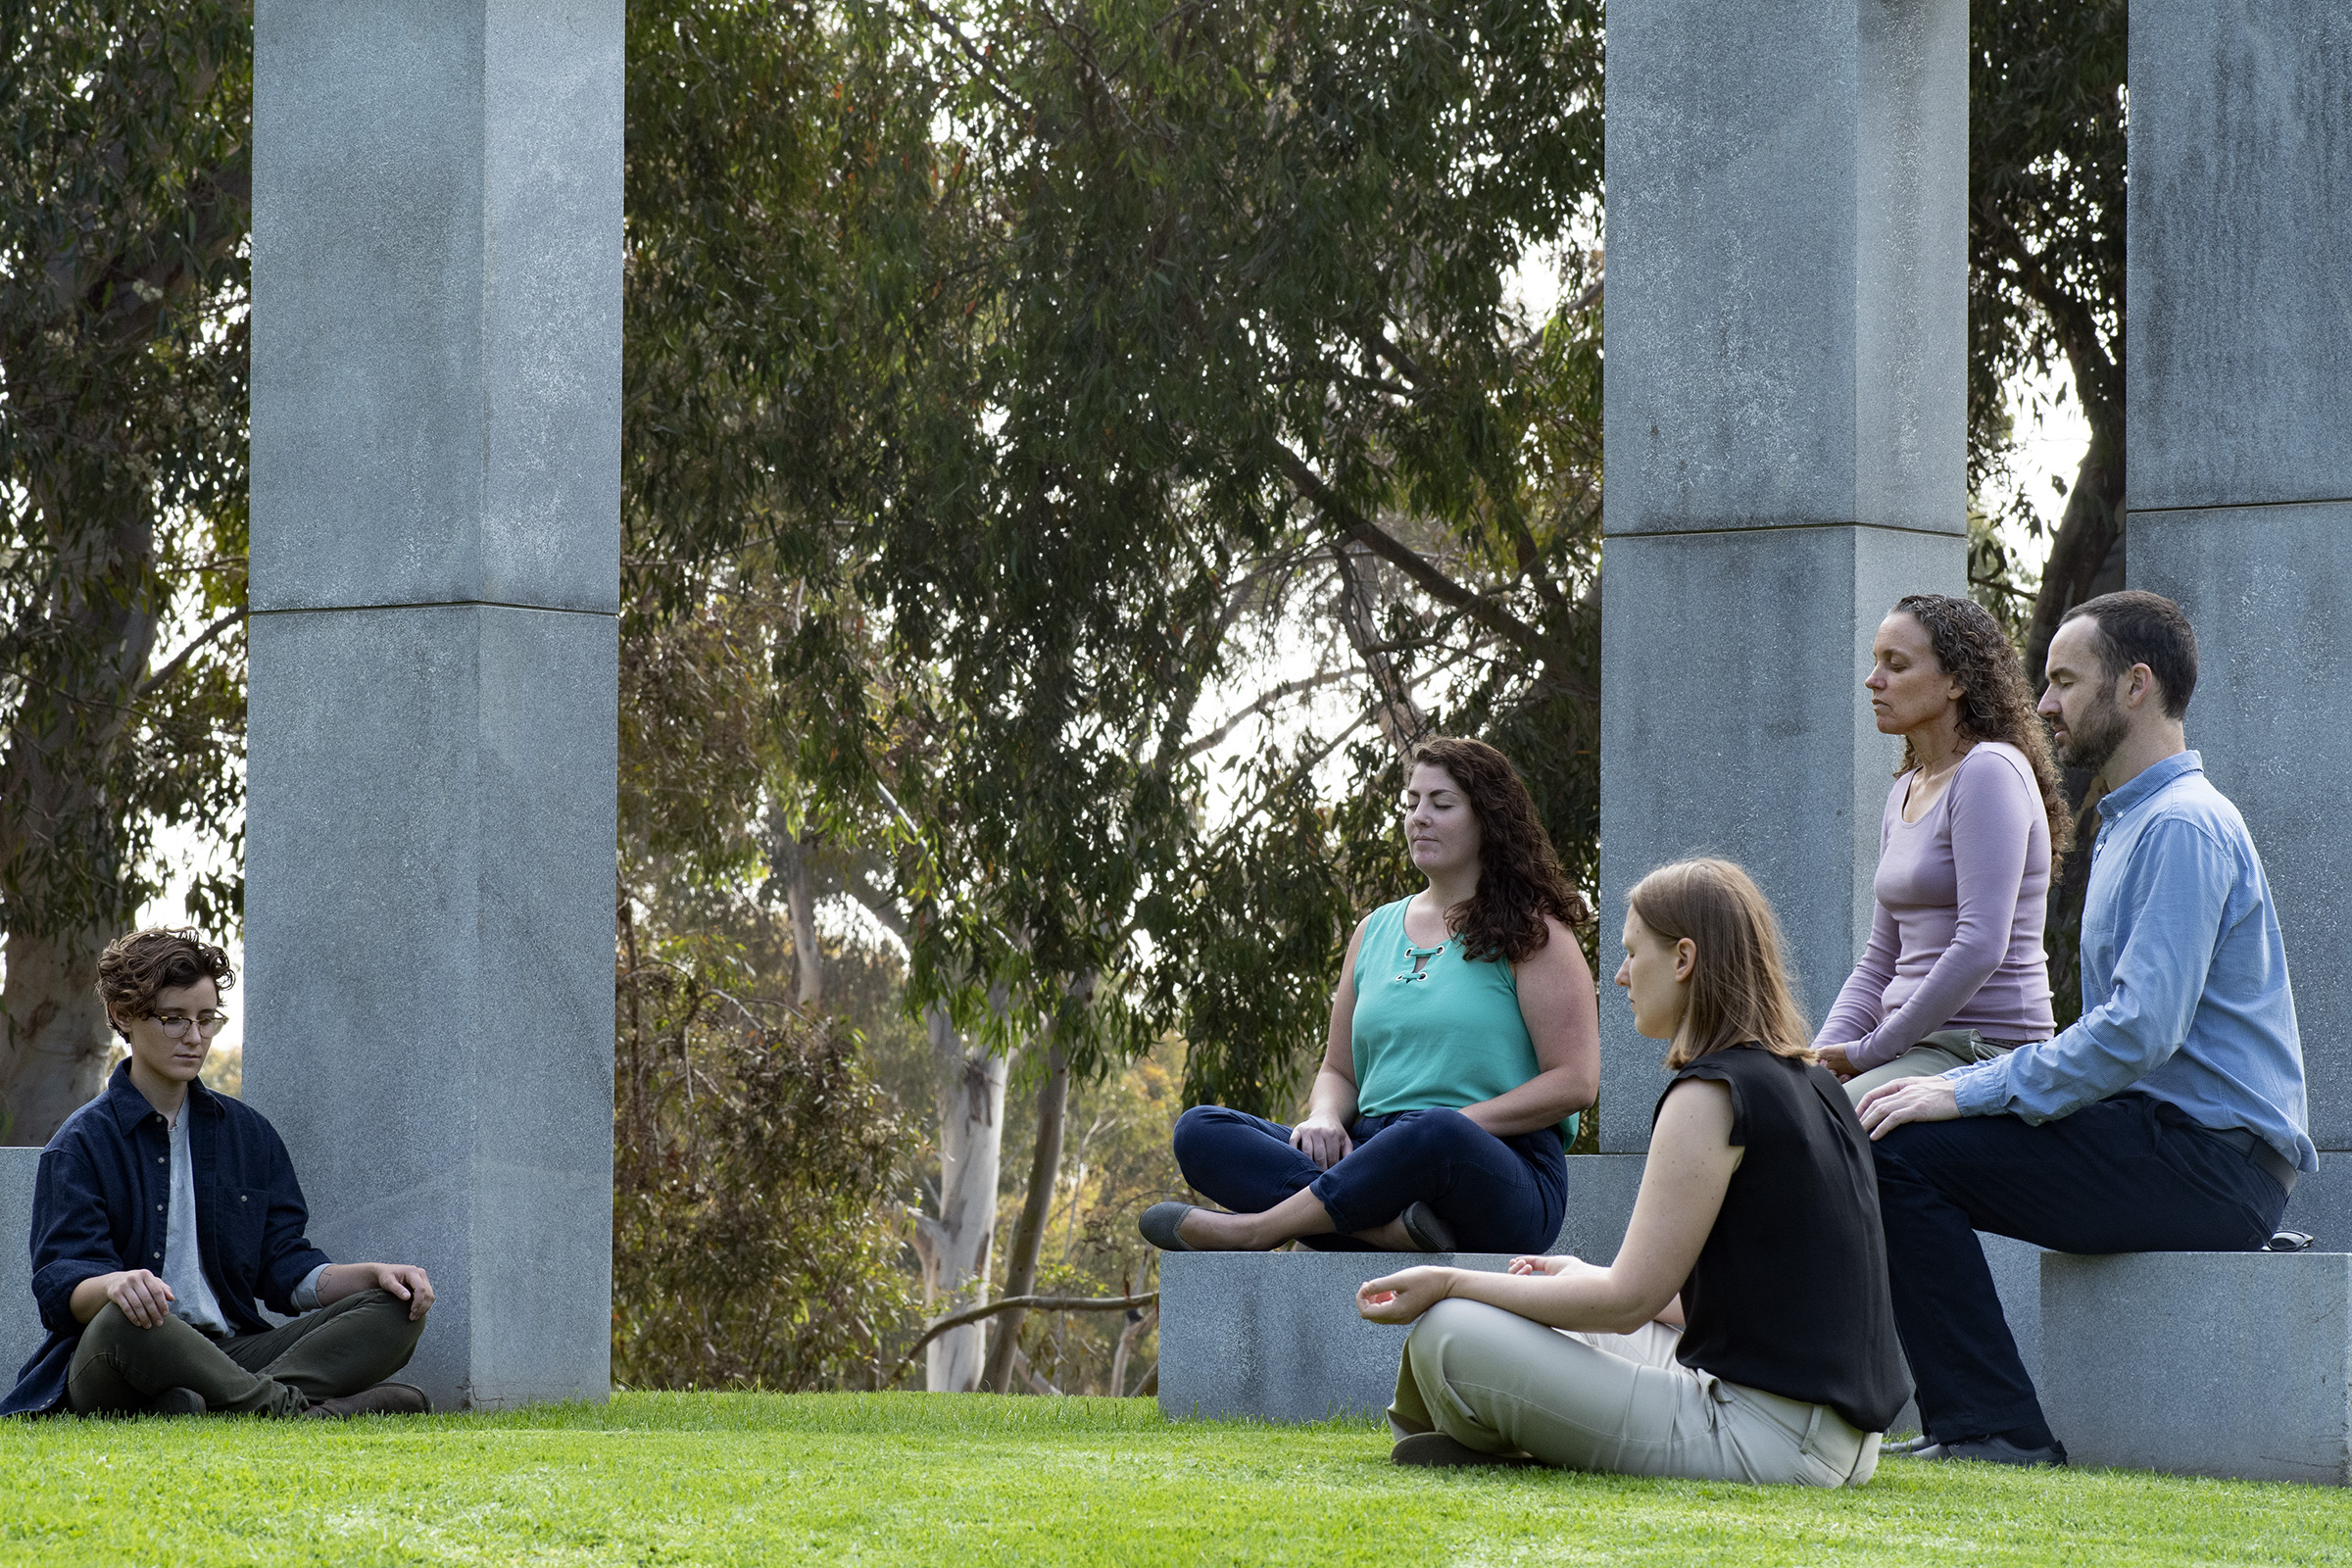 Dr. Ariel Lang (second from right) practices meditation with associates from her lab. She's focusing on complementary and alternative techniques, such as yoga and meditation, as a therapy for patients with PTSD.